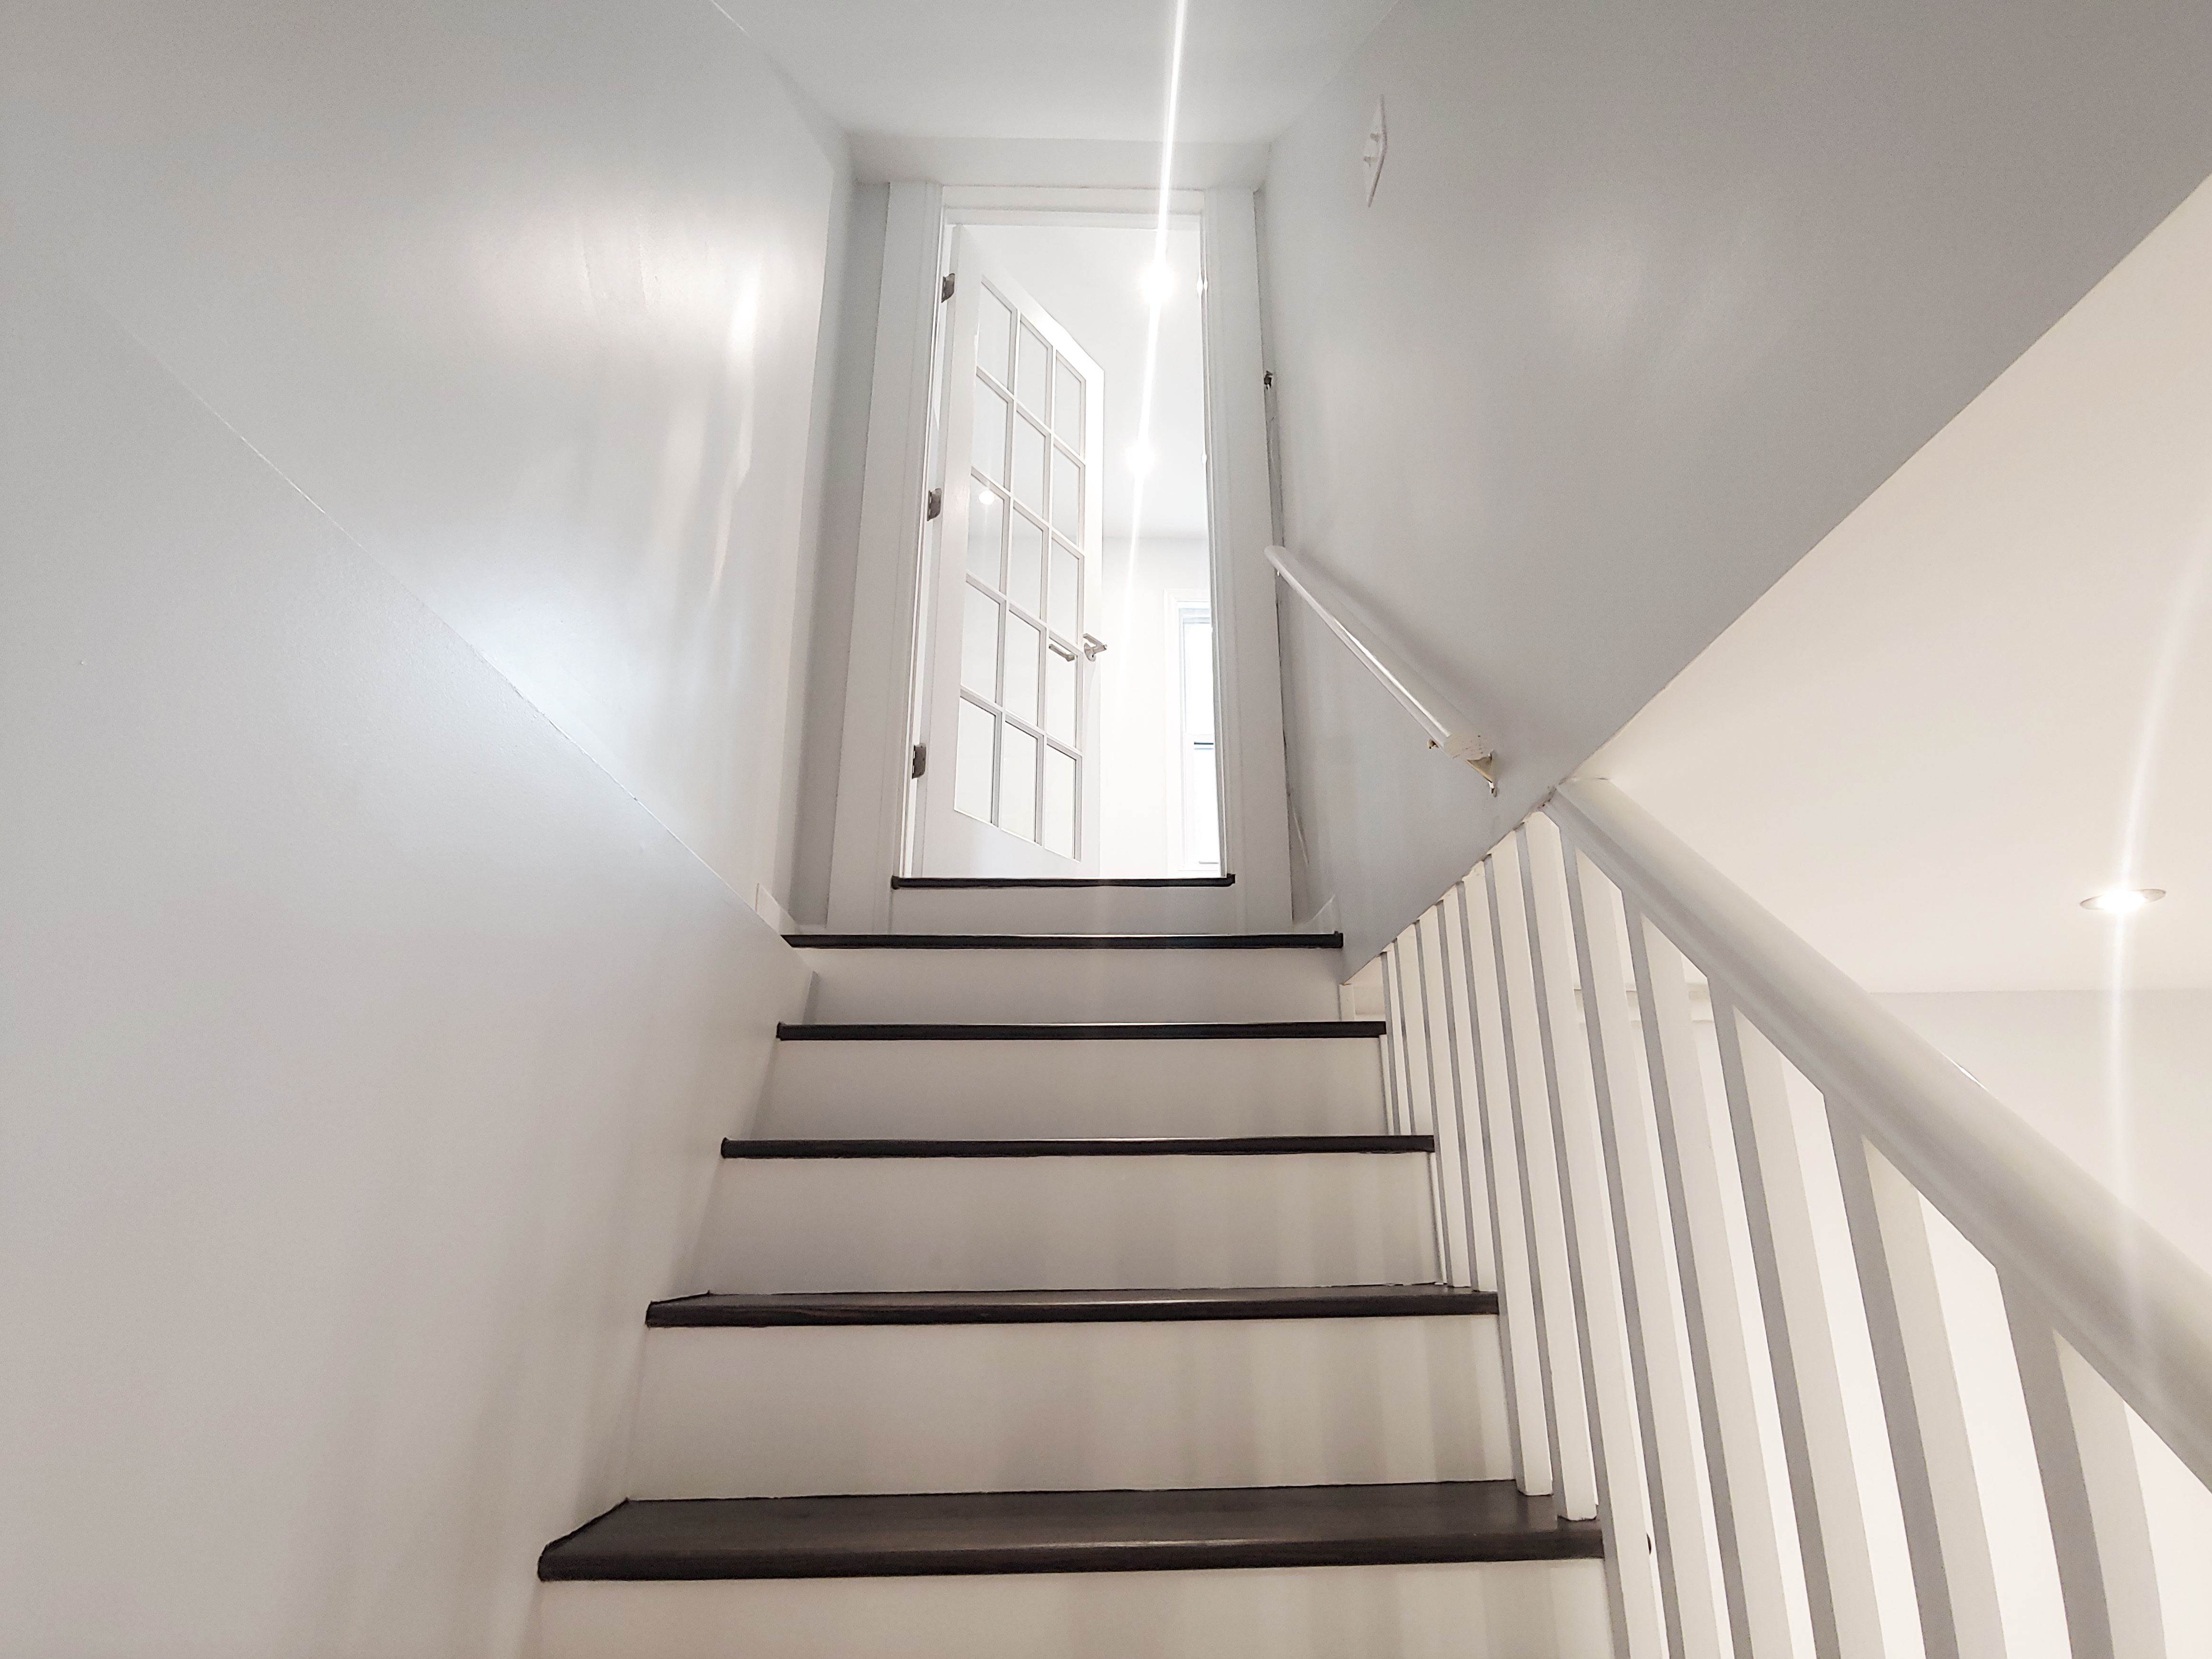 stair to basement